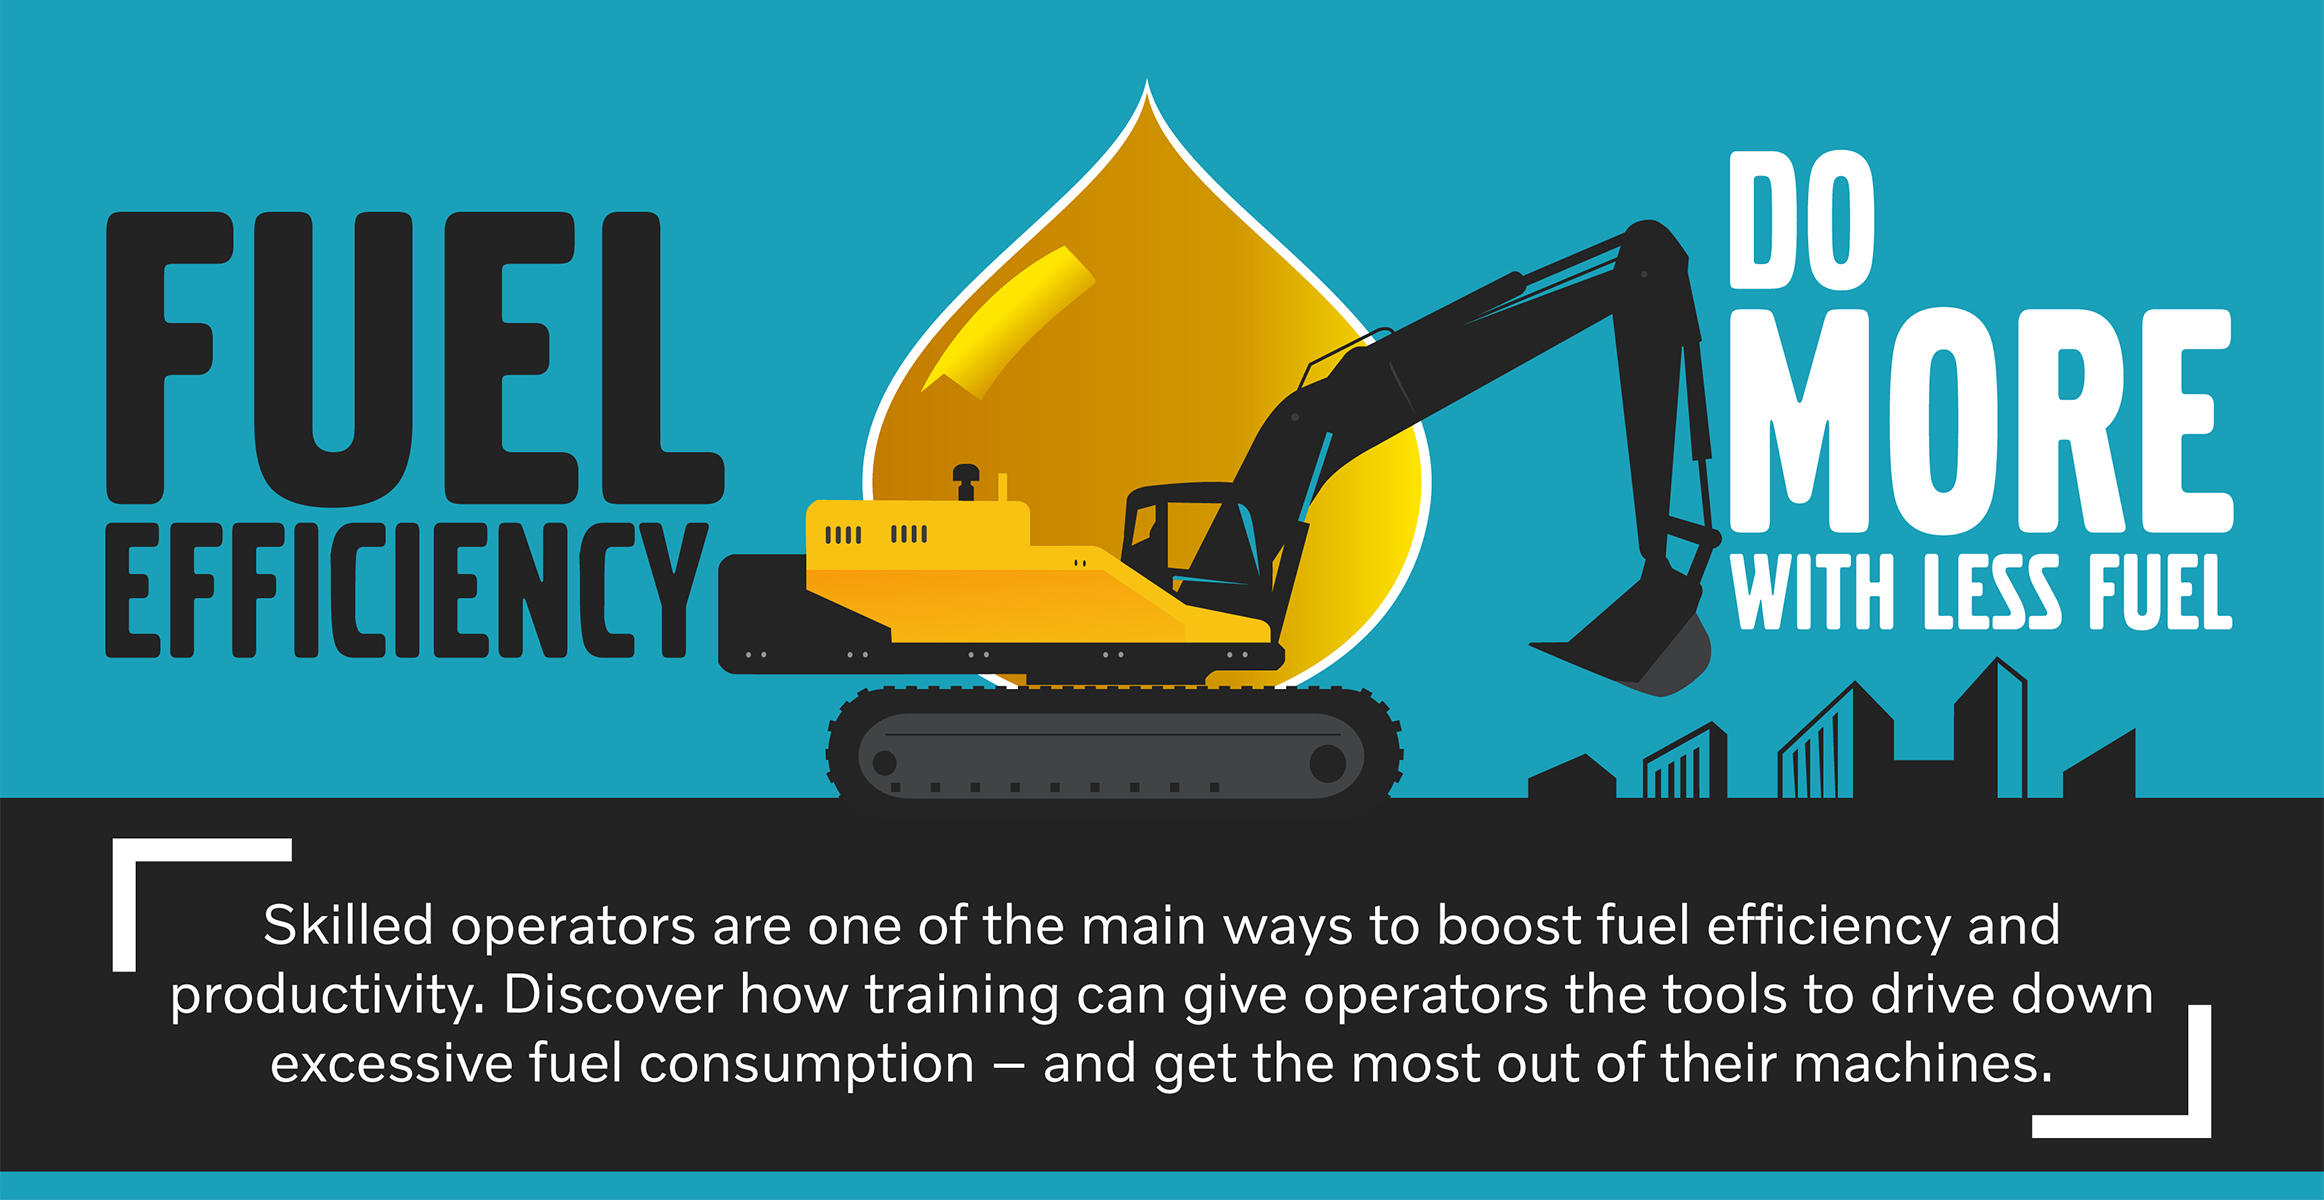 INFOGRAPHIC: Fuel Efficiency - Do More With Less Fuel